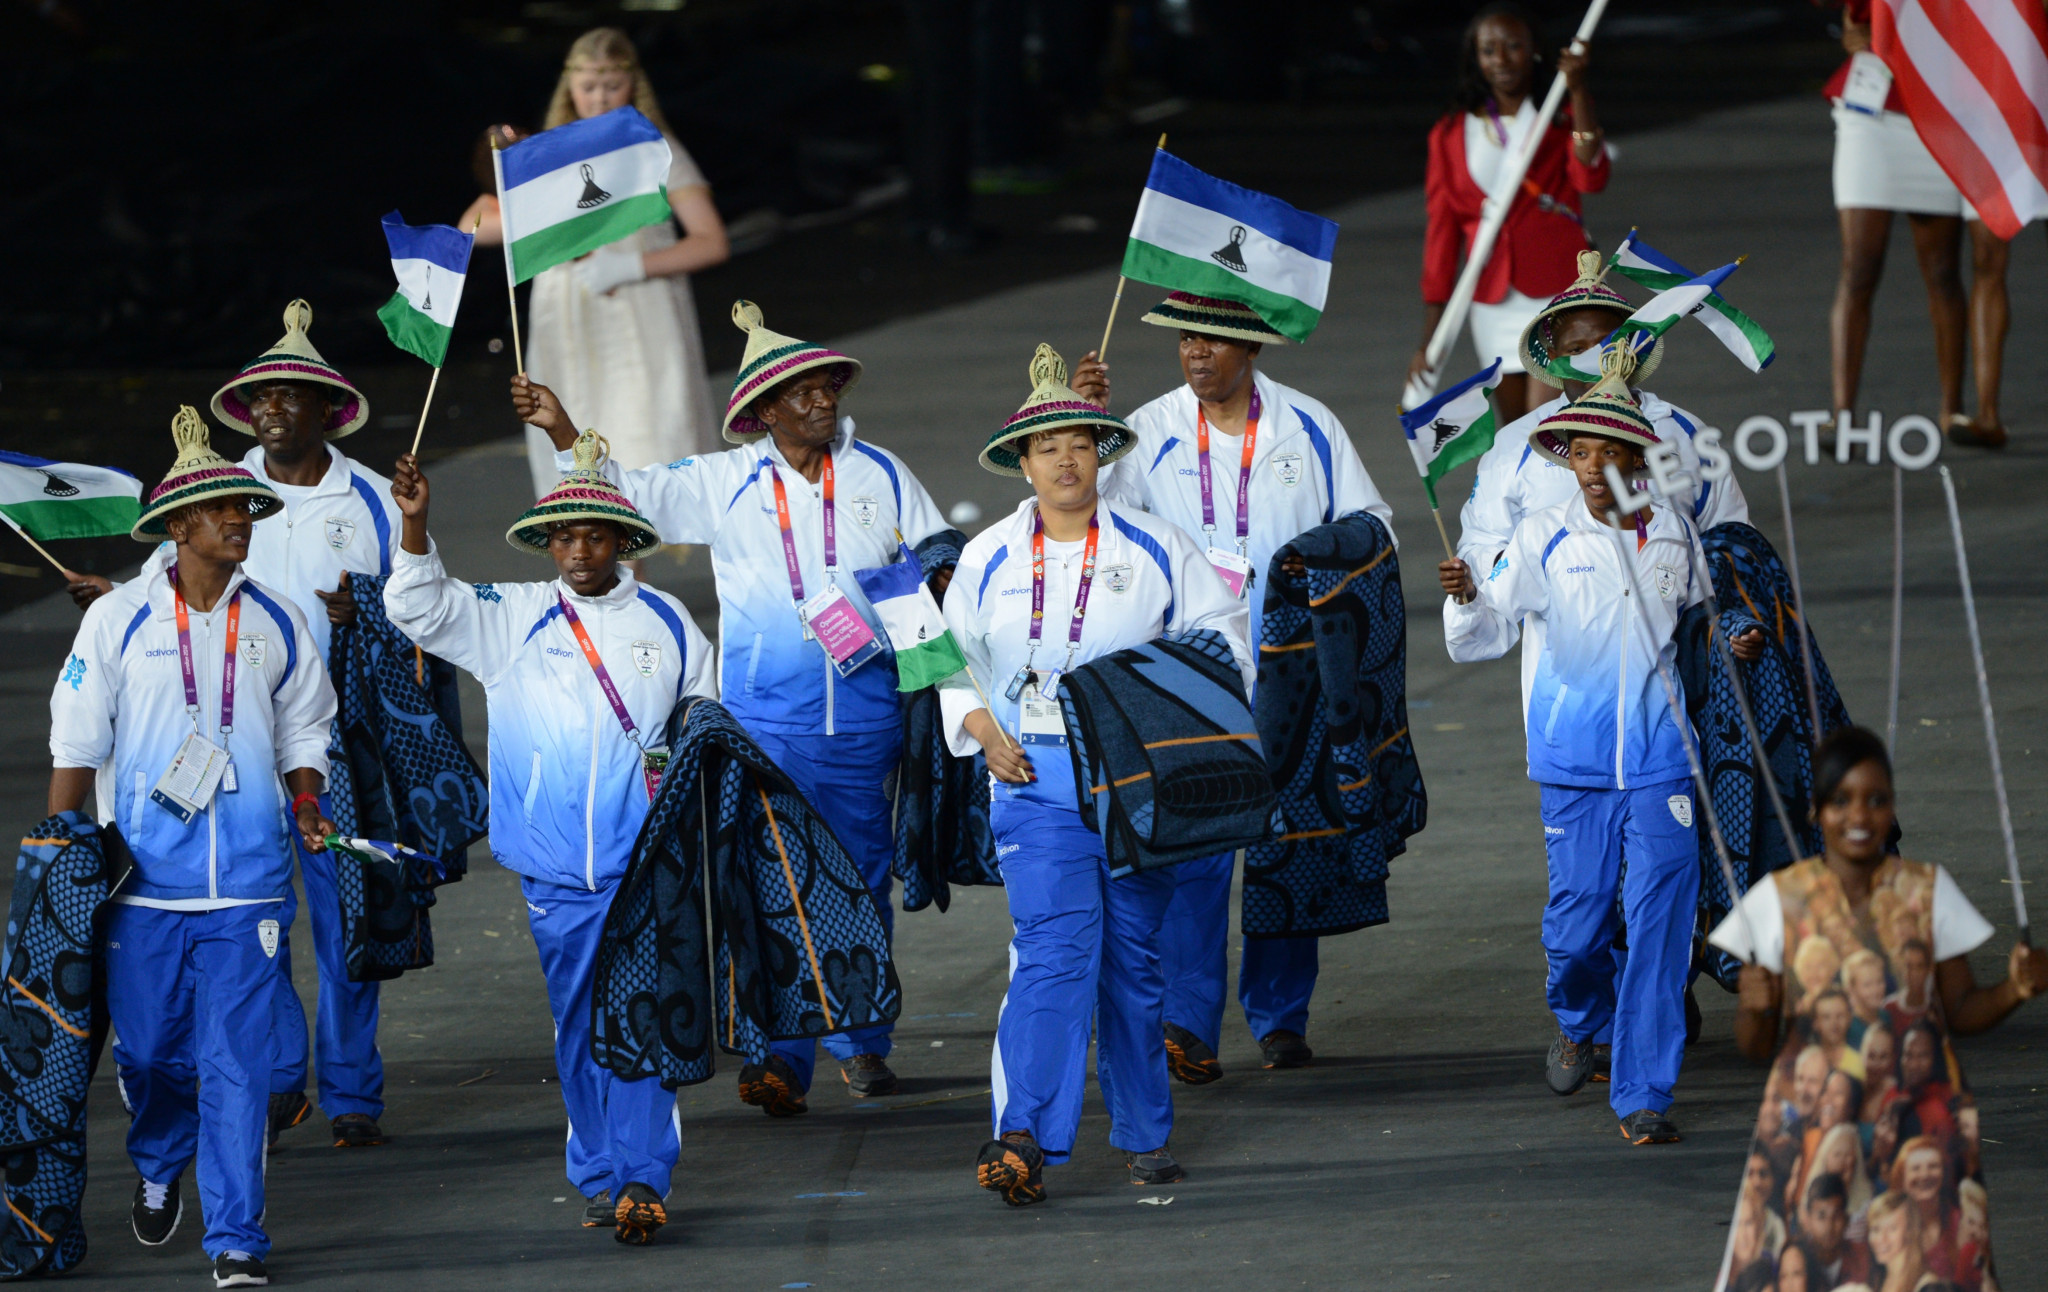 Lesotho NOC elects new President to succeed IOC member Moiloa-Ramoqopo